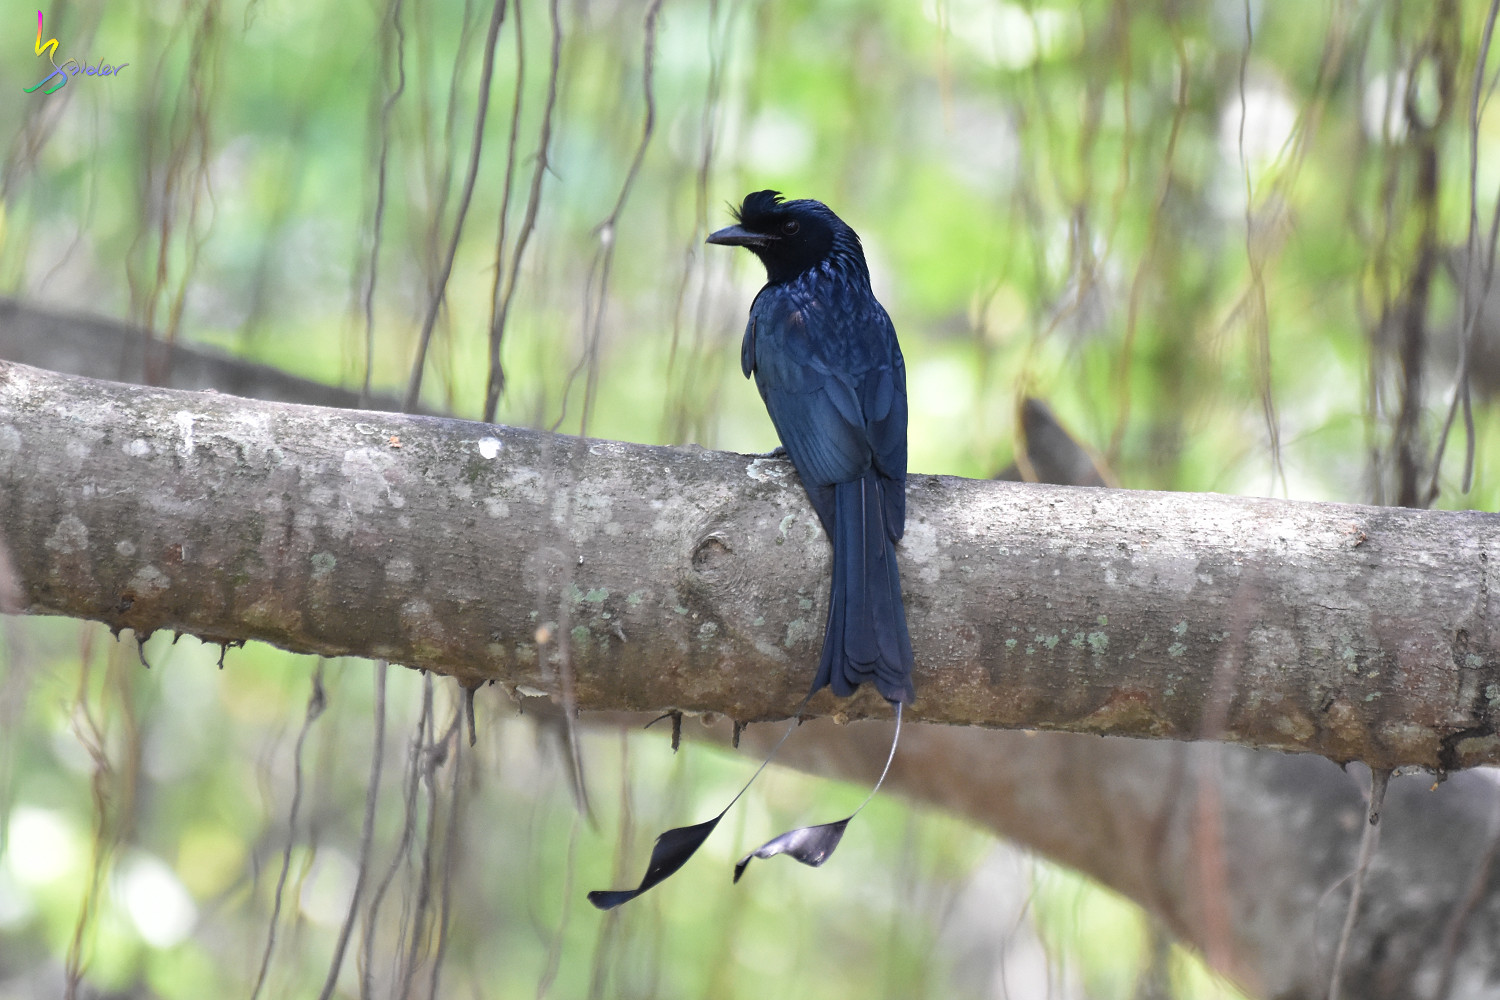 Greater_Racket-tailed_Drongo_4209